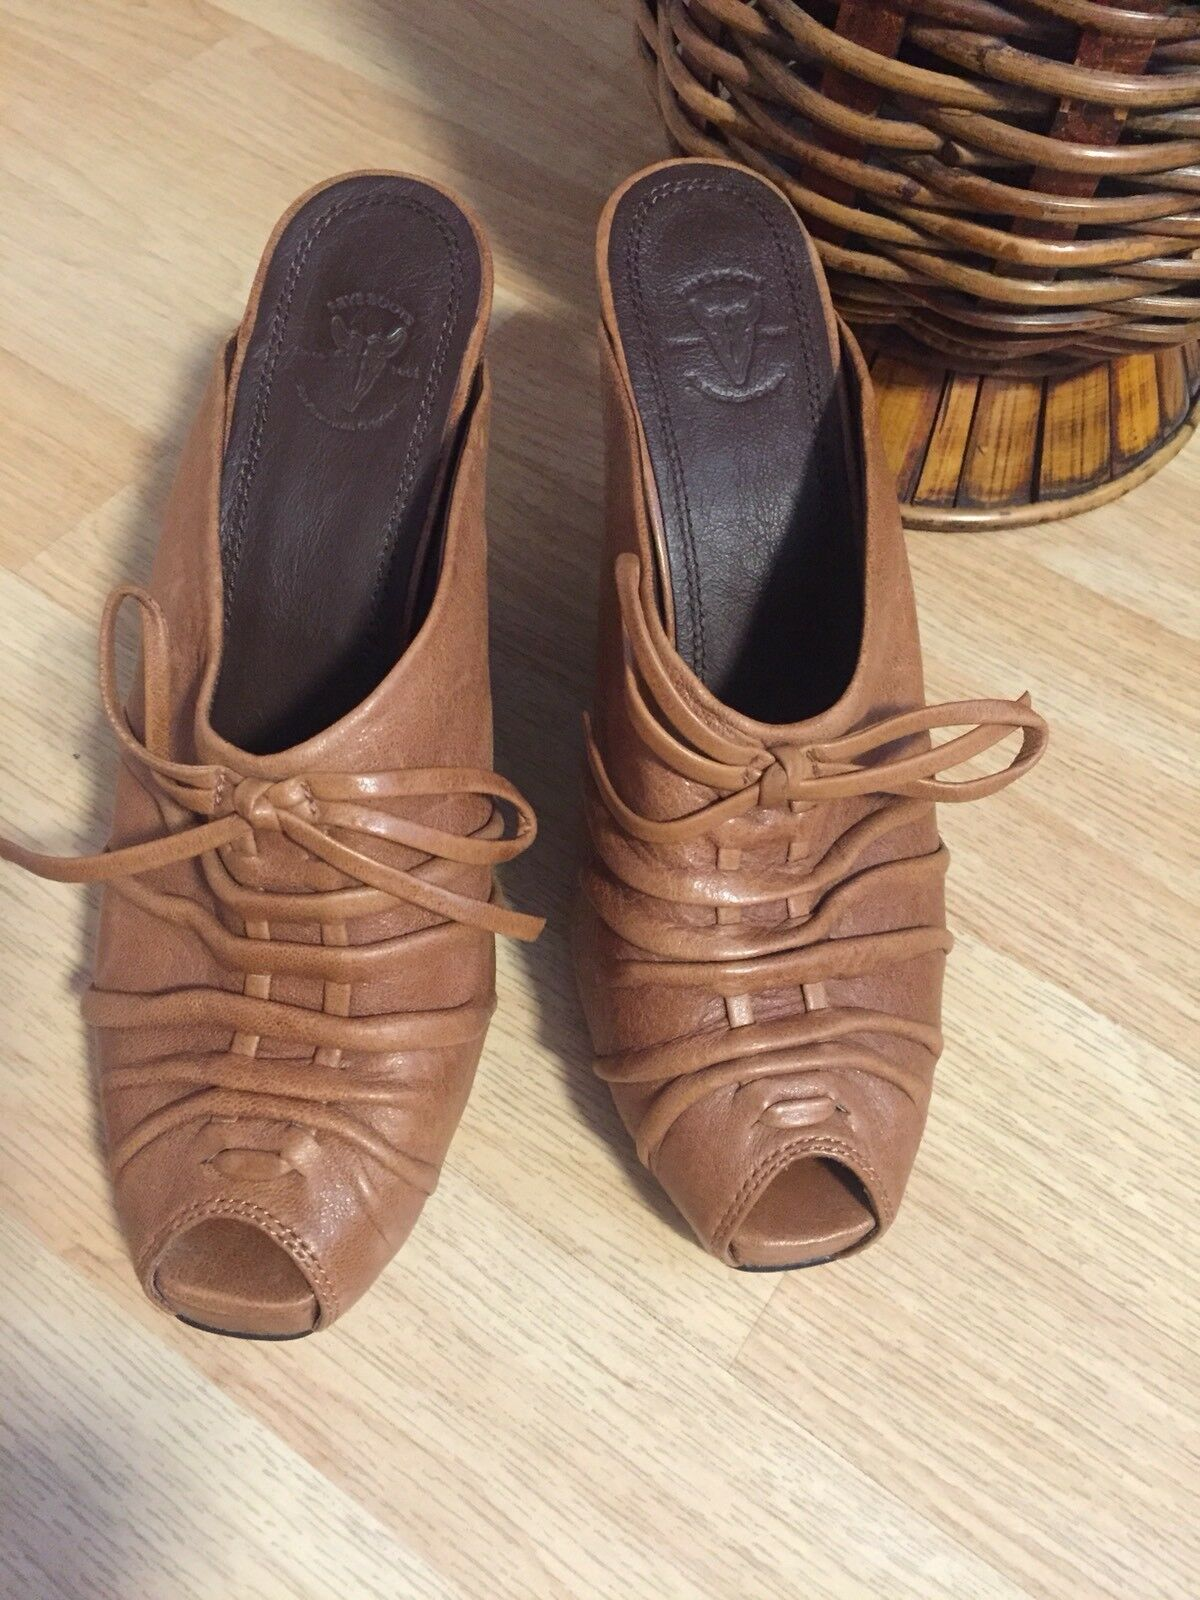 Frye Gwen Mule Womans Size 10 M Brown Leather Open Toe Tie Slip On Wedges